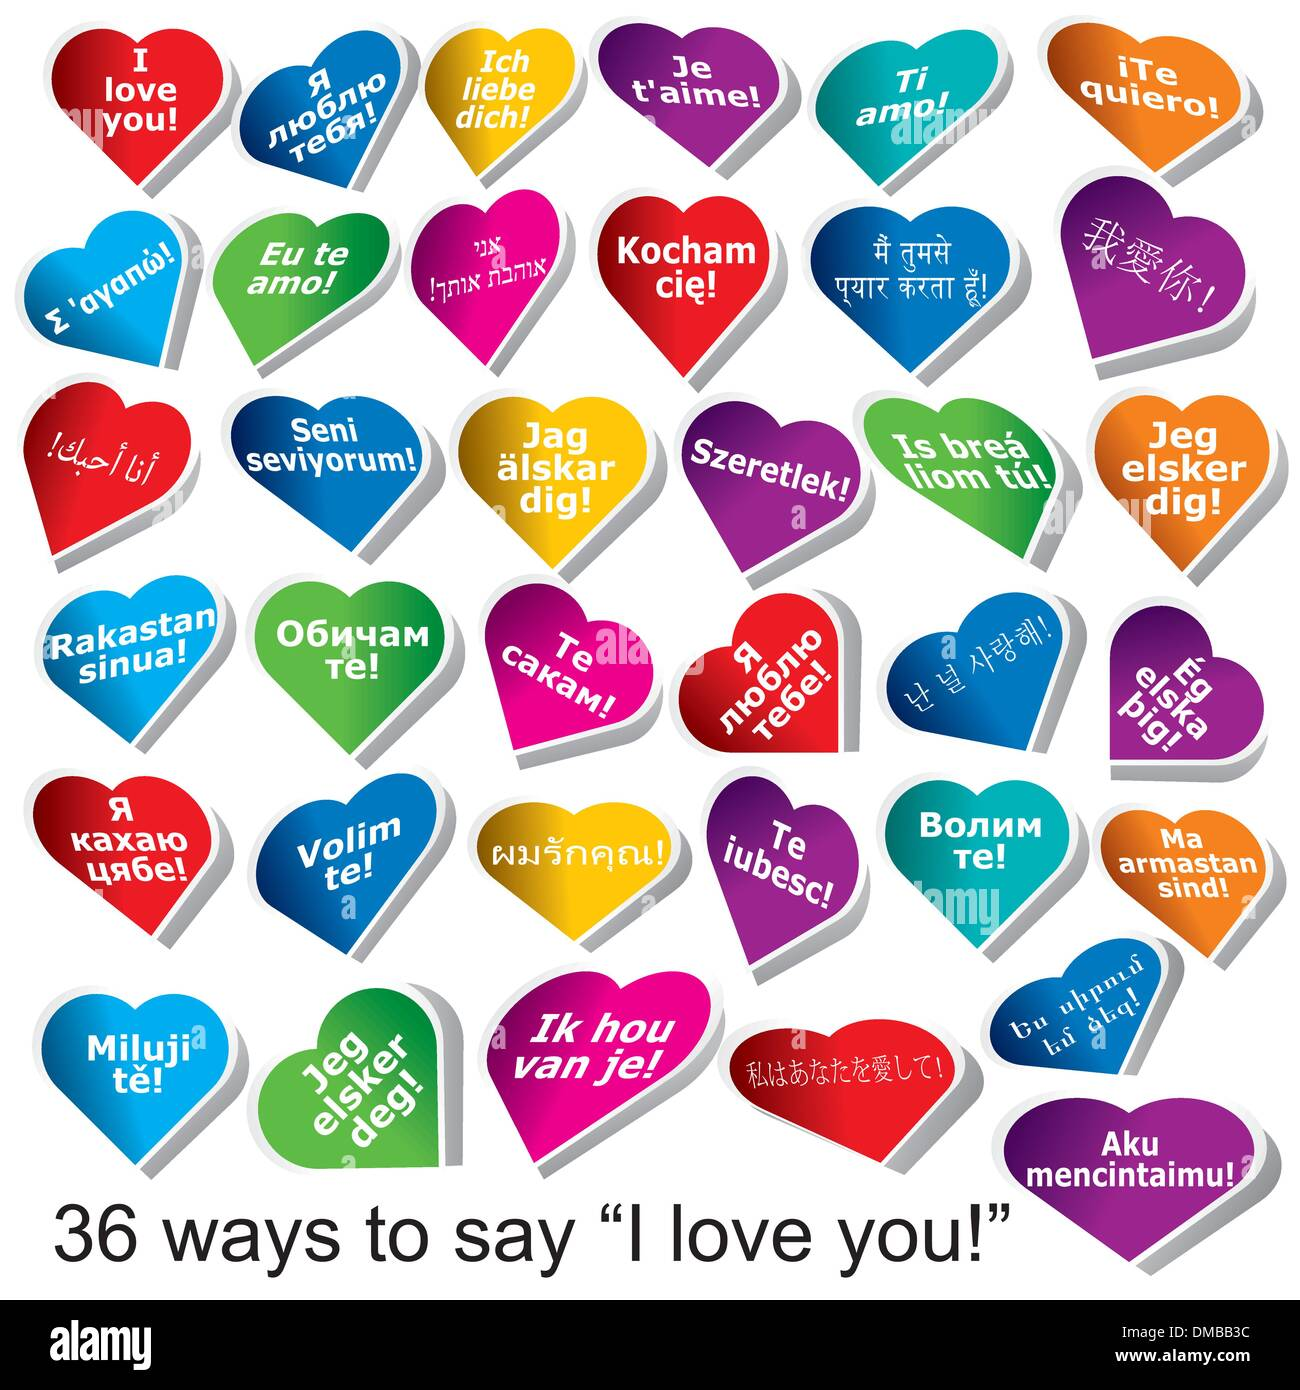 36 Ways To Say 'I Love You' - Stock Image